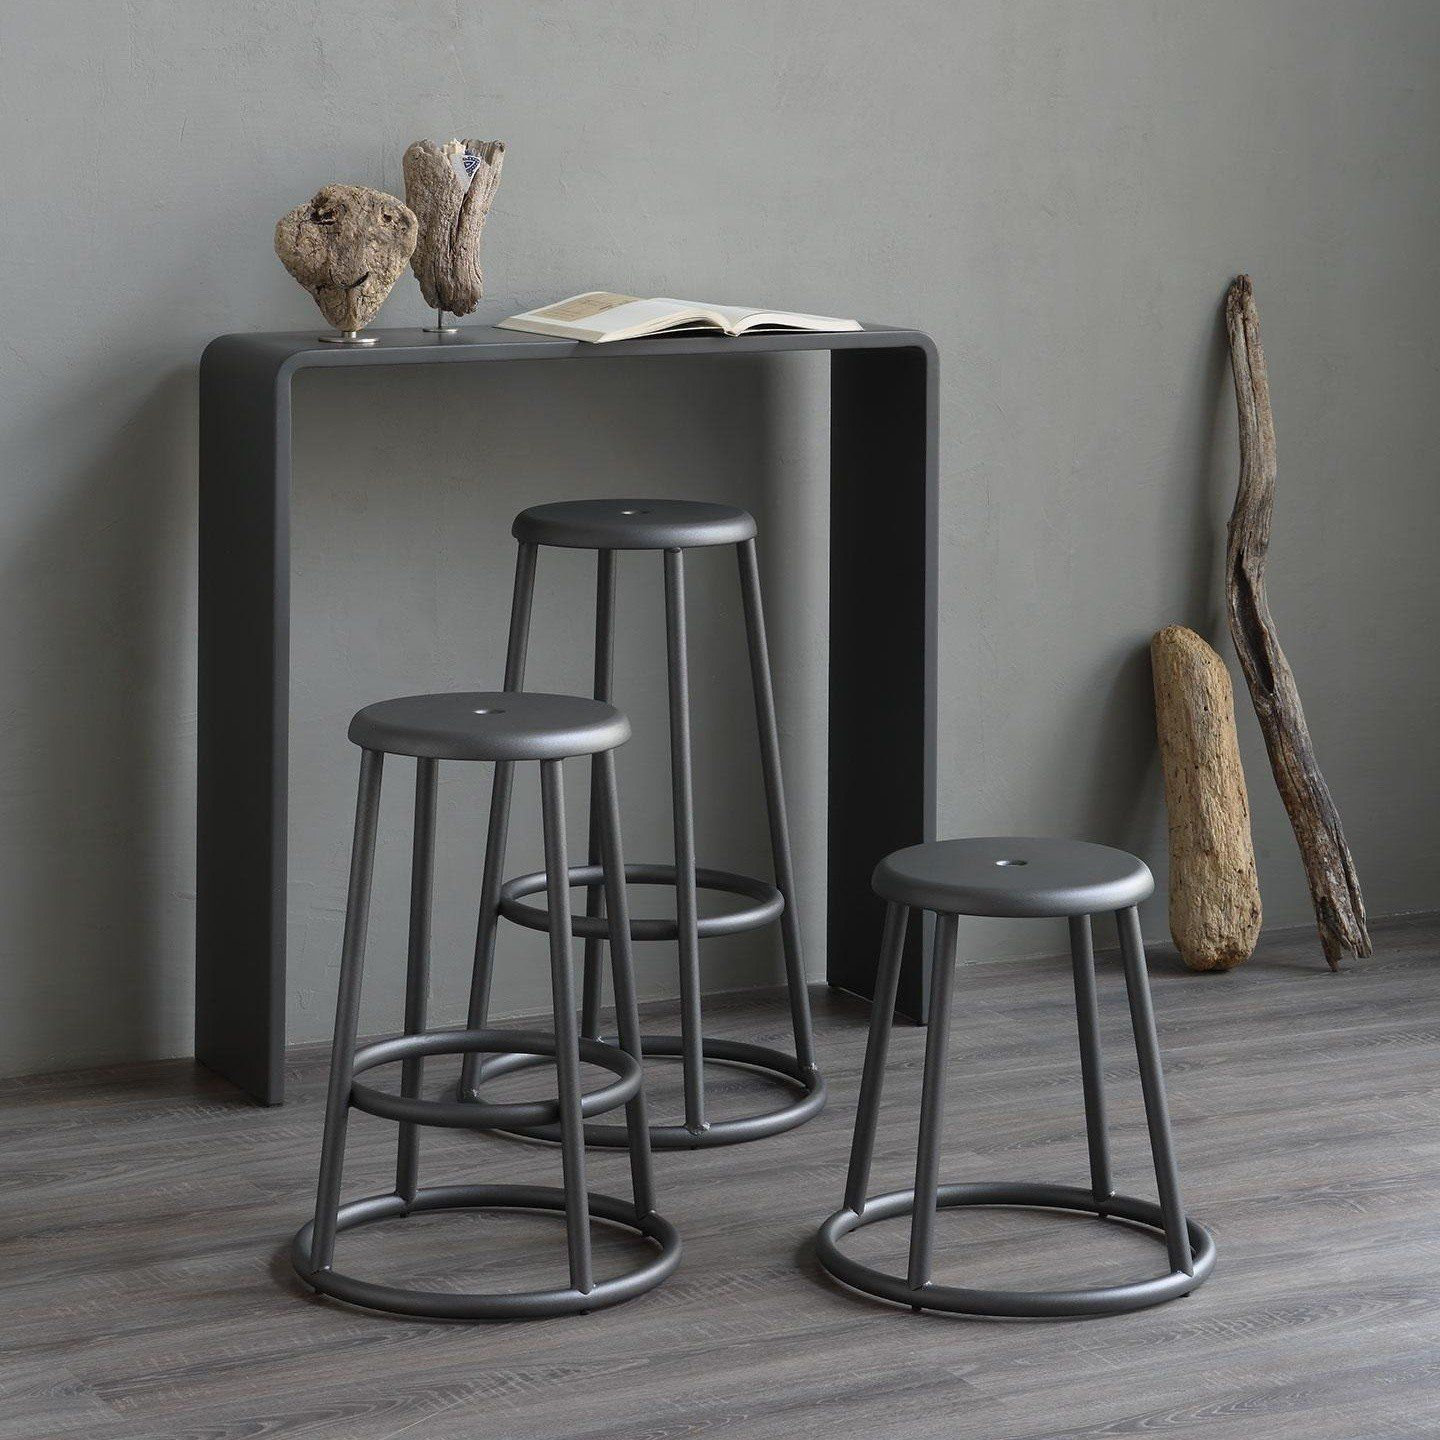 alluring homesfeed leather with pertaining round bar incredible awesome stools wood miraculous appealing sofa stool barstools back looking also and metal black industrial style to